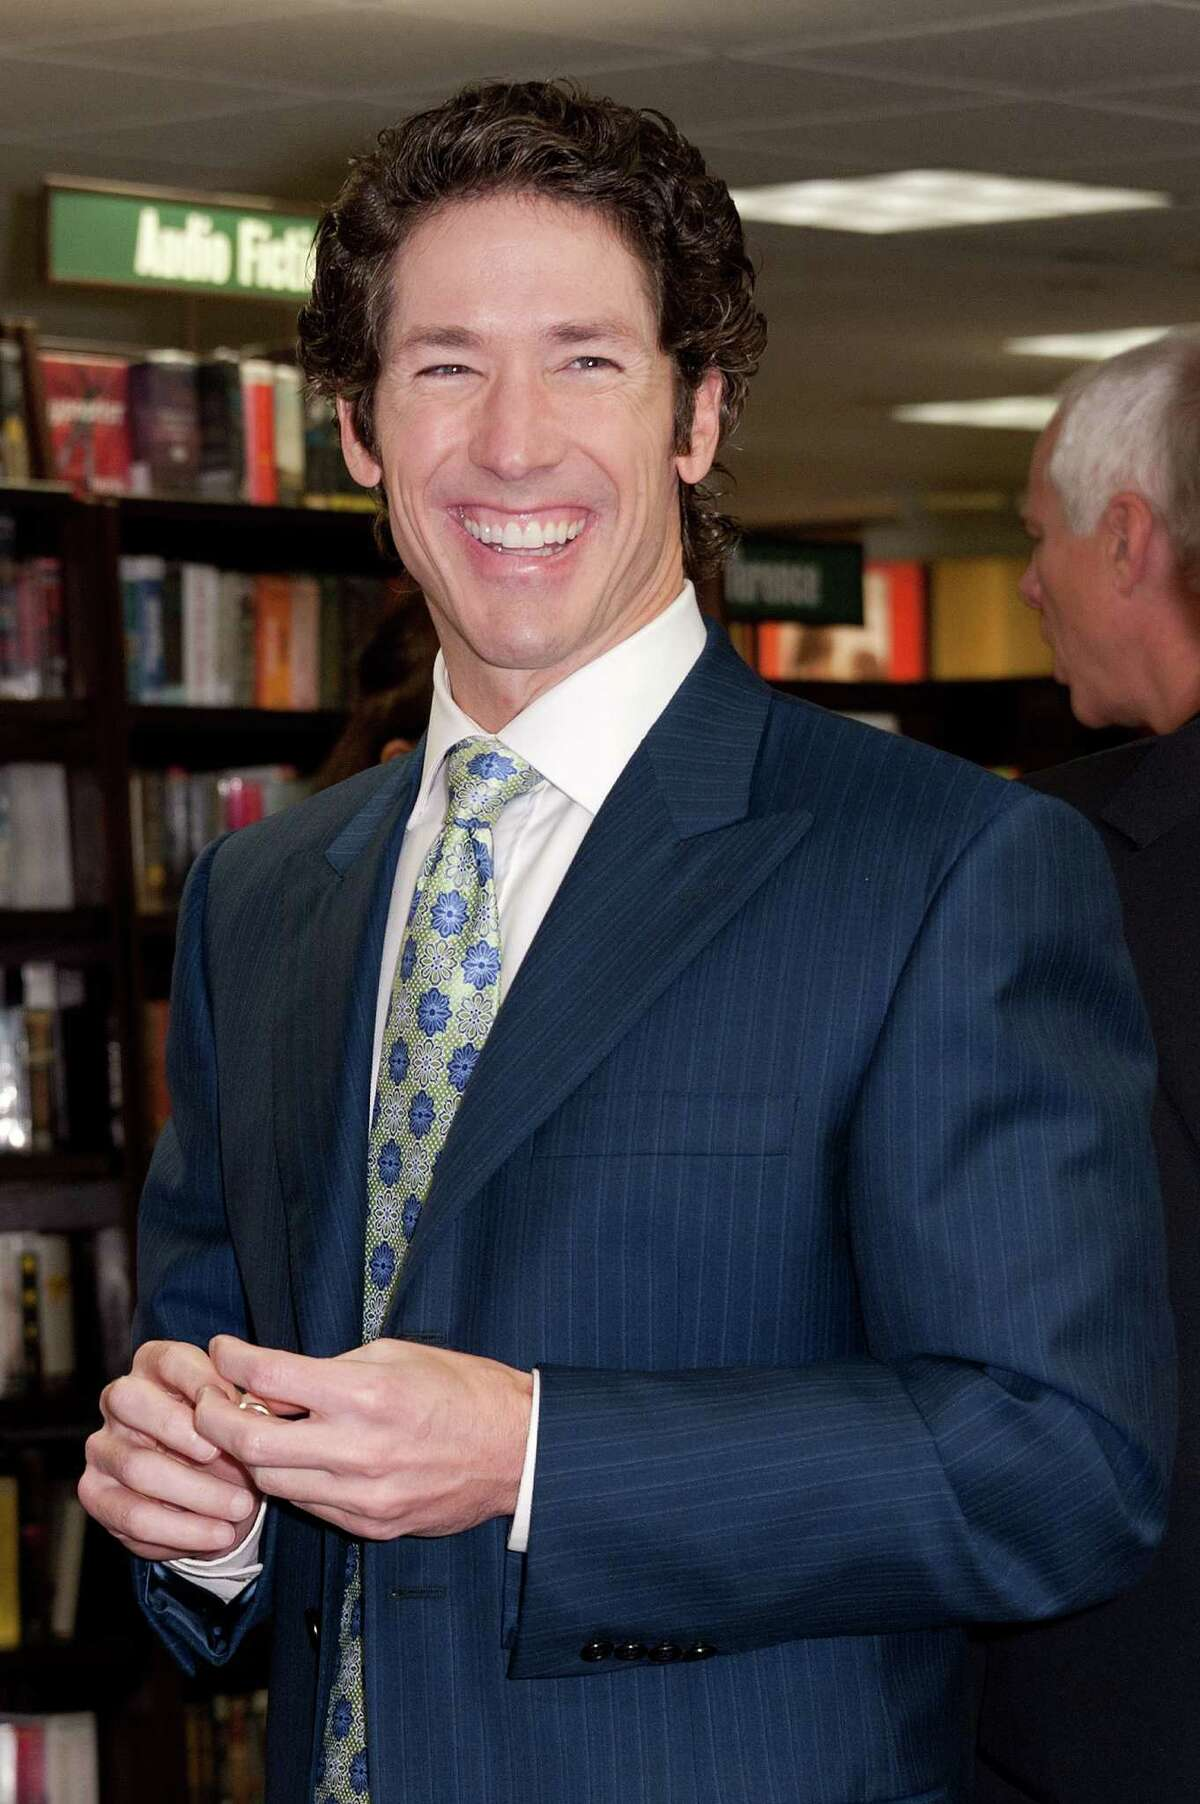 Minister Joel Osteen of Lakewood Church in Houston has signed on to the project as executive producer.